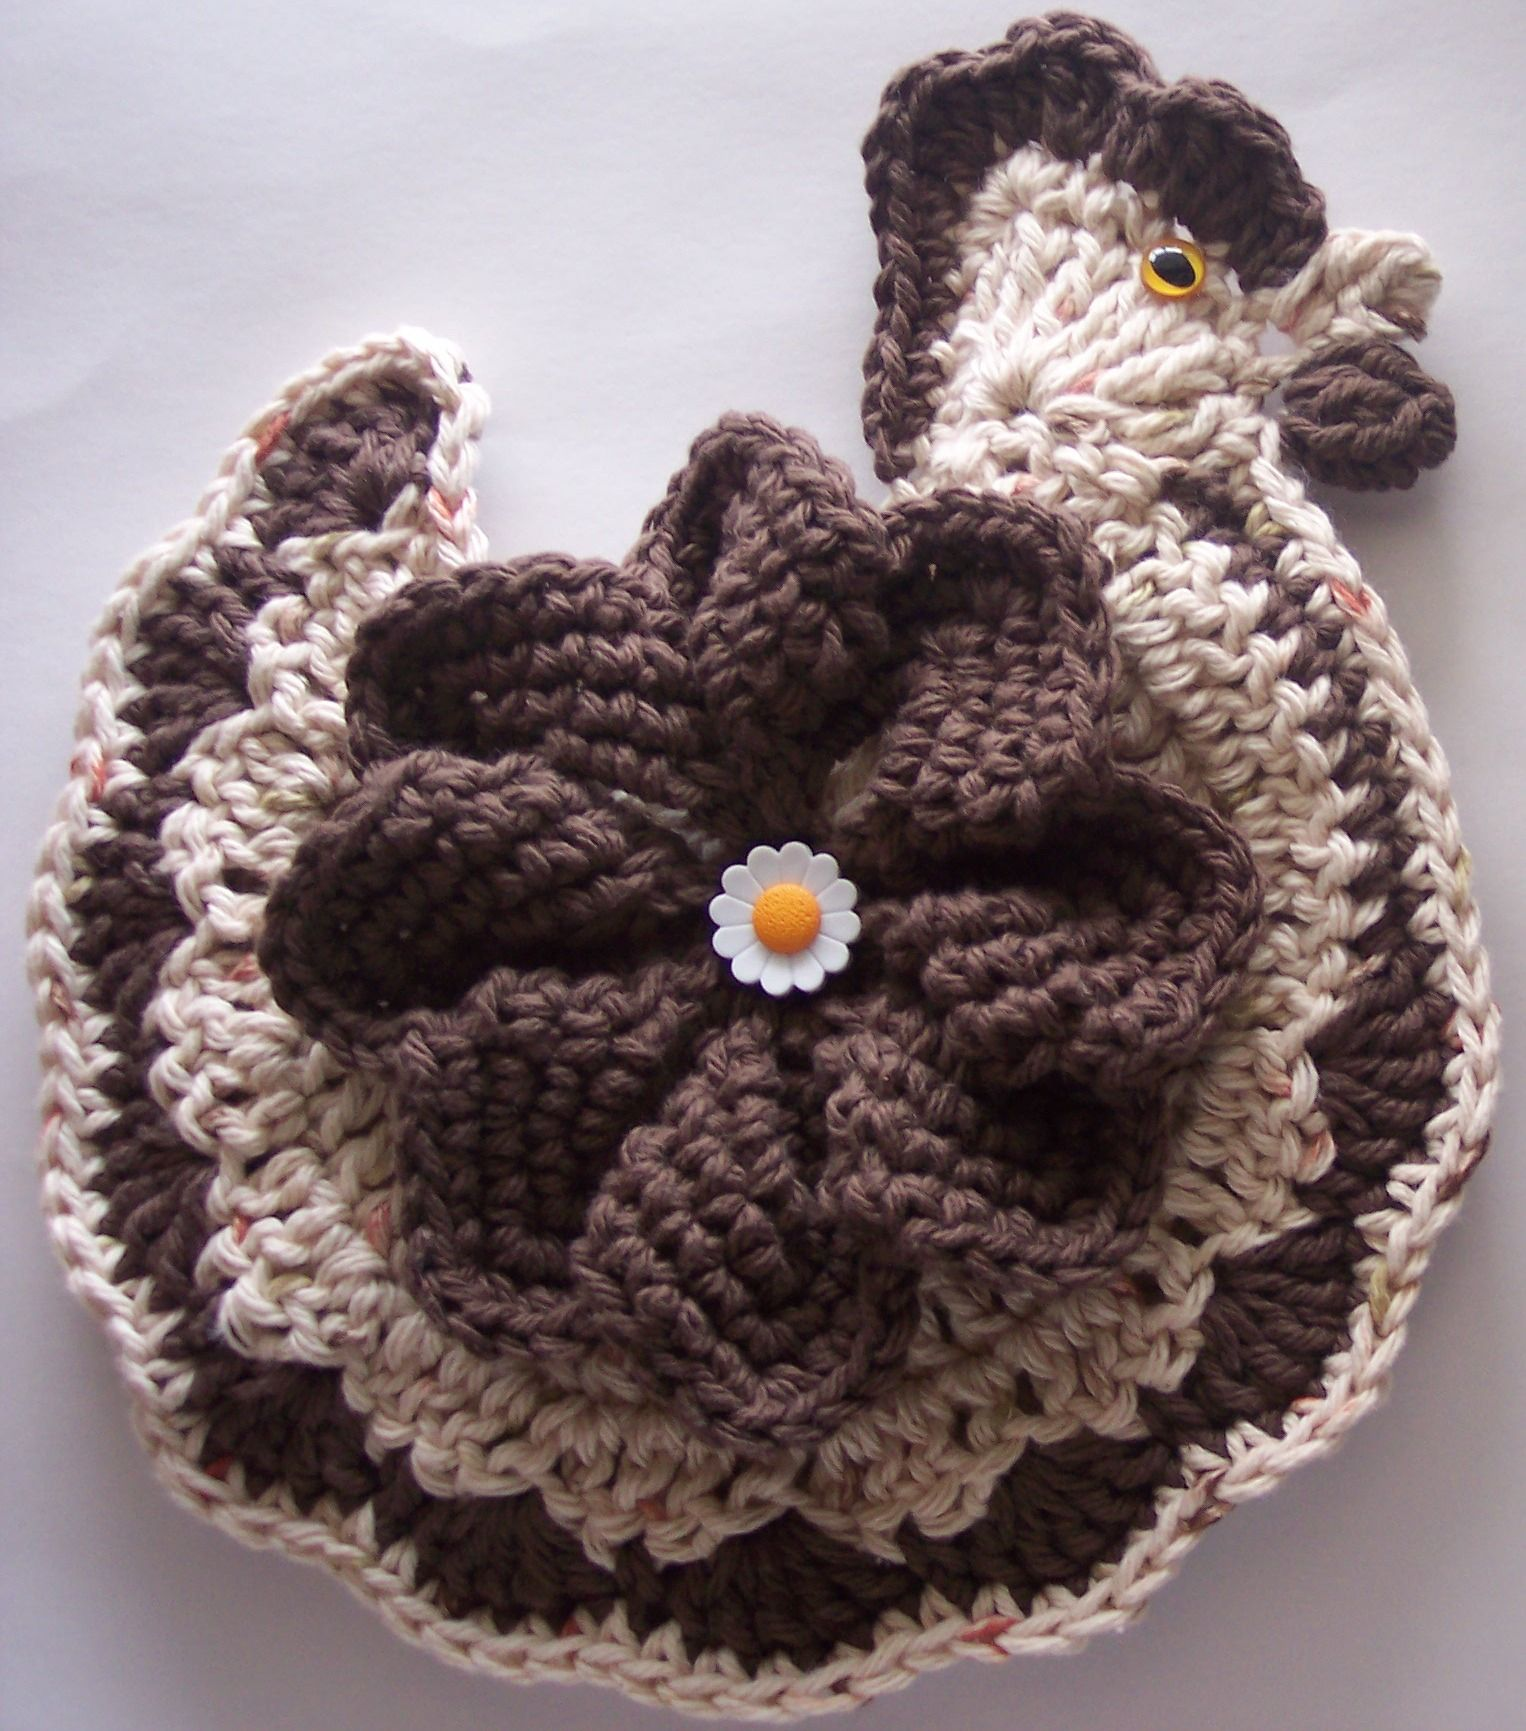 Crochet Chicken Potholder Decoration by Linda Weddle | Crochet ...